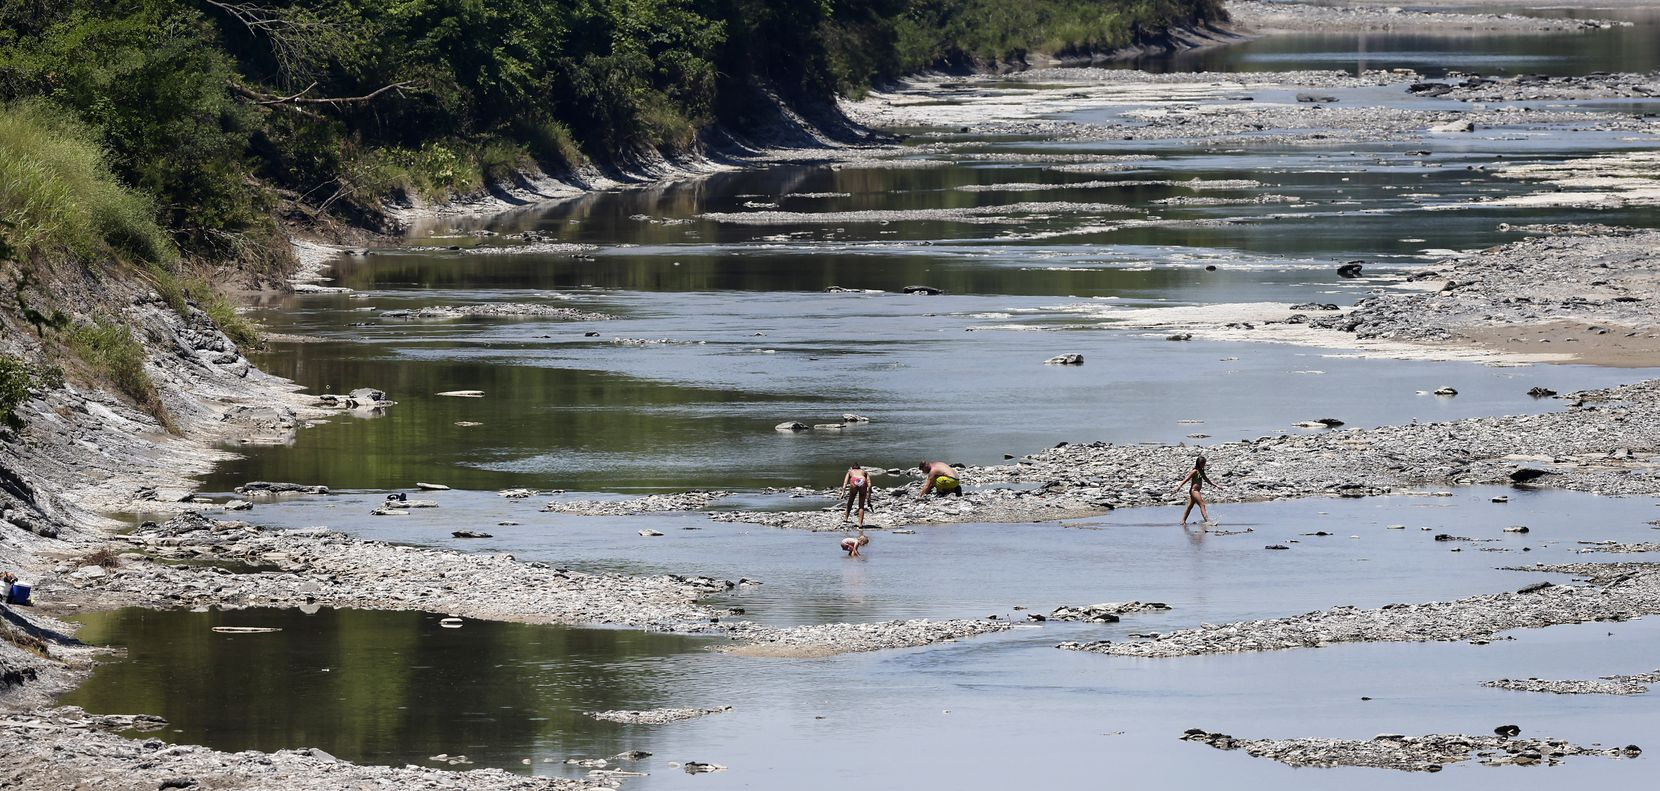 A family searches for fossils in the Sulphur River where the Upper Trinity Regional Water District plans on building the Lake Ralph Hall and Leon Hurse Dam near Ladonia, Texas, Wednesday, June 16, 2021. The construction is expected to turn up more fossils near the NSR Ladonia Fossil Park on Hwy 34.  The lake will provide 54 million gallons of water per day for some 29 communities in Denton and Collin counties. The $490 million project should begin delivering water by 2025. The lake is named after Hall, who was a U.S. representative for Texas's 4th congressional district.